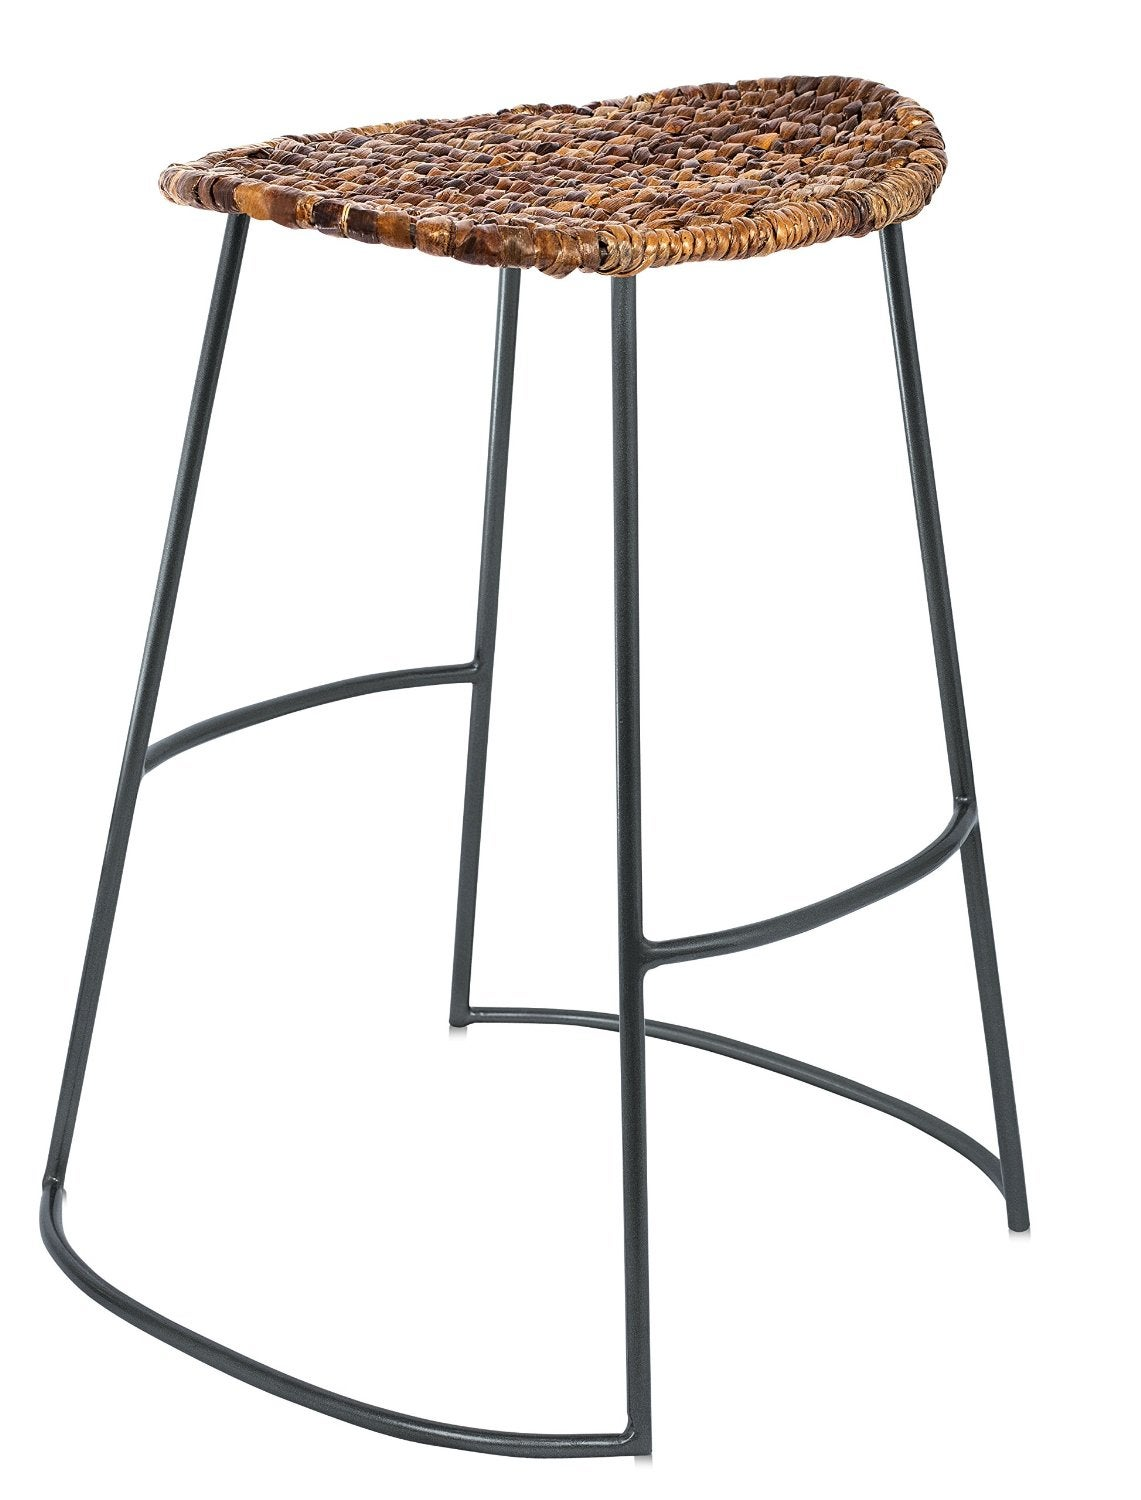 BirdRock Home Espresso Seagrass Industrial Counter Stools (Set of 2)